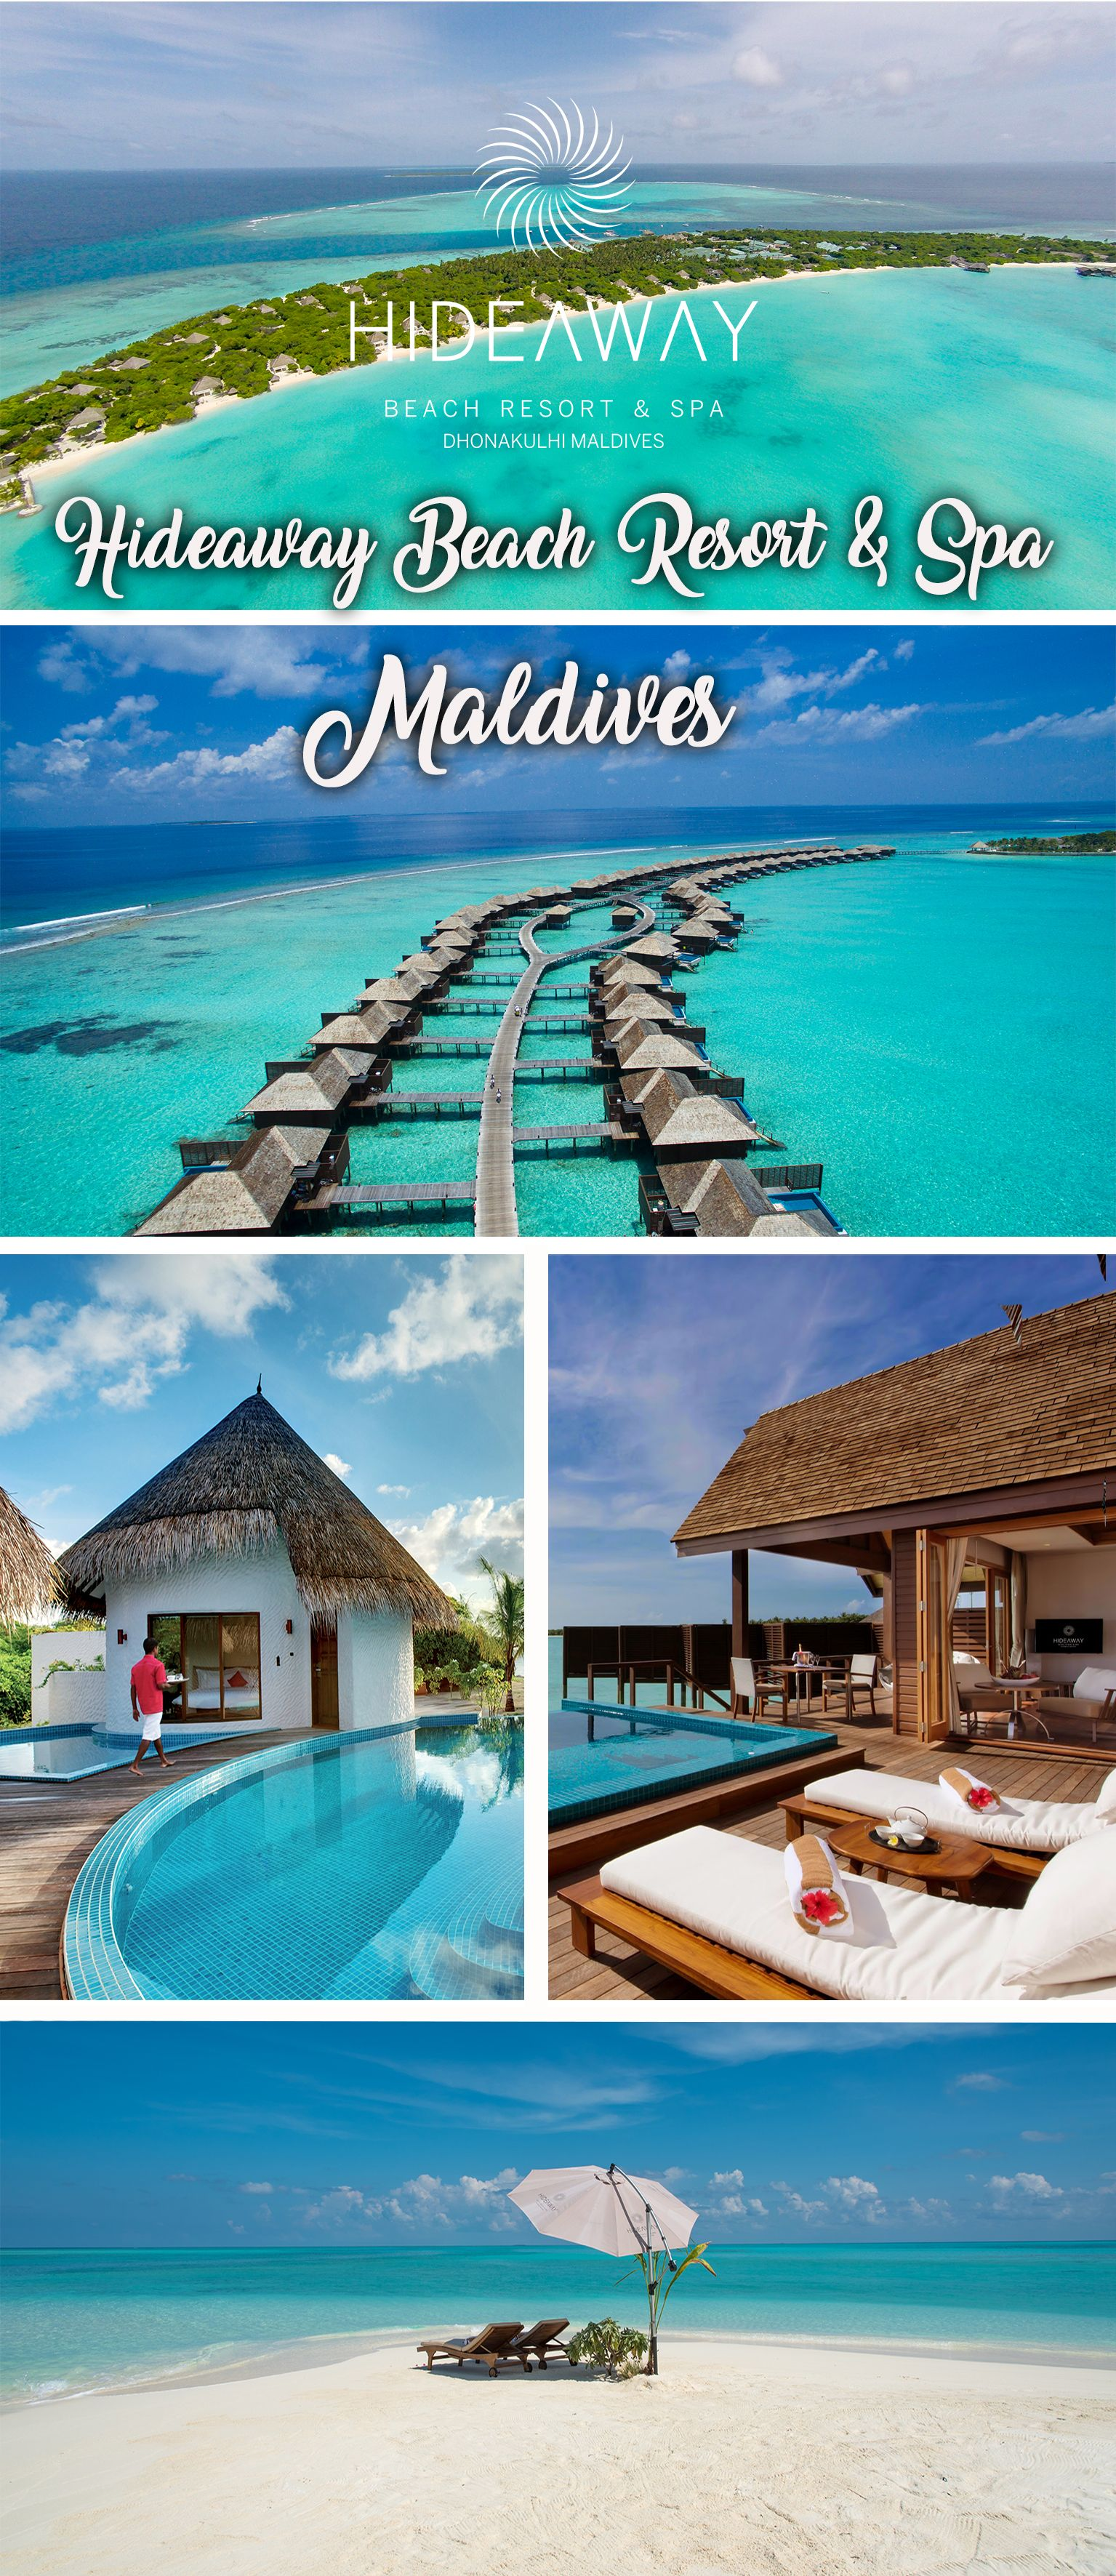 Our 103 suites are set on the beach amongst coconut groves and lush vegetation or on stilts over our beautiful lagoon, and offer world-class facilities and uncompromised privacy. At Hideaway Beach Resort Maldives each villa has their own island host (butler) to take care of all needs.